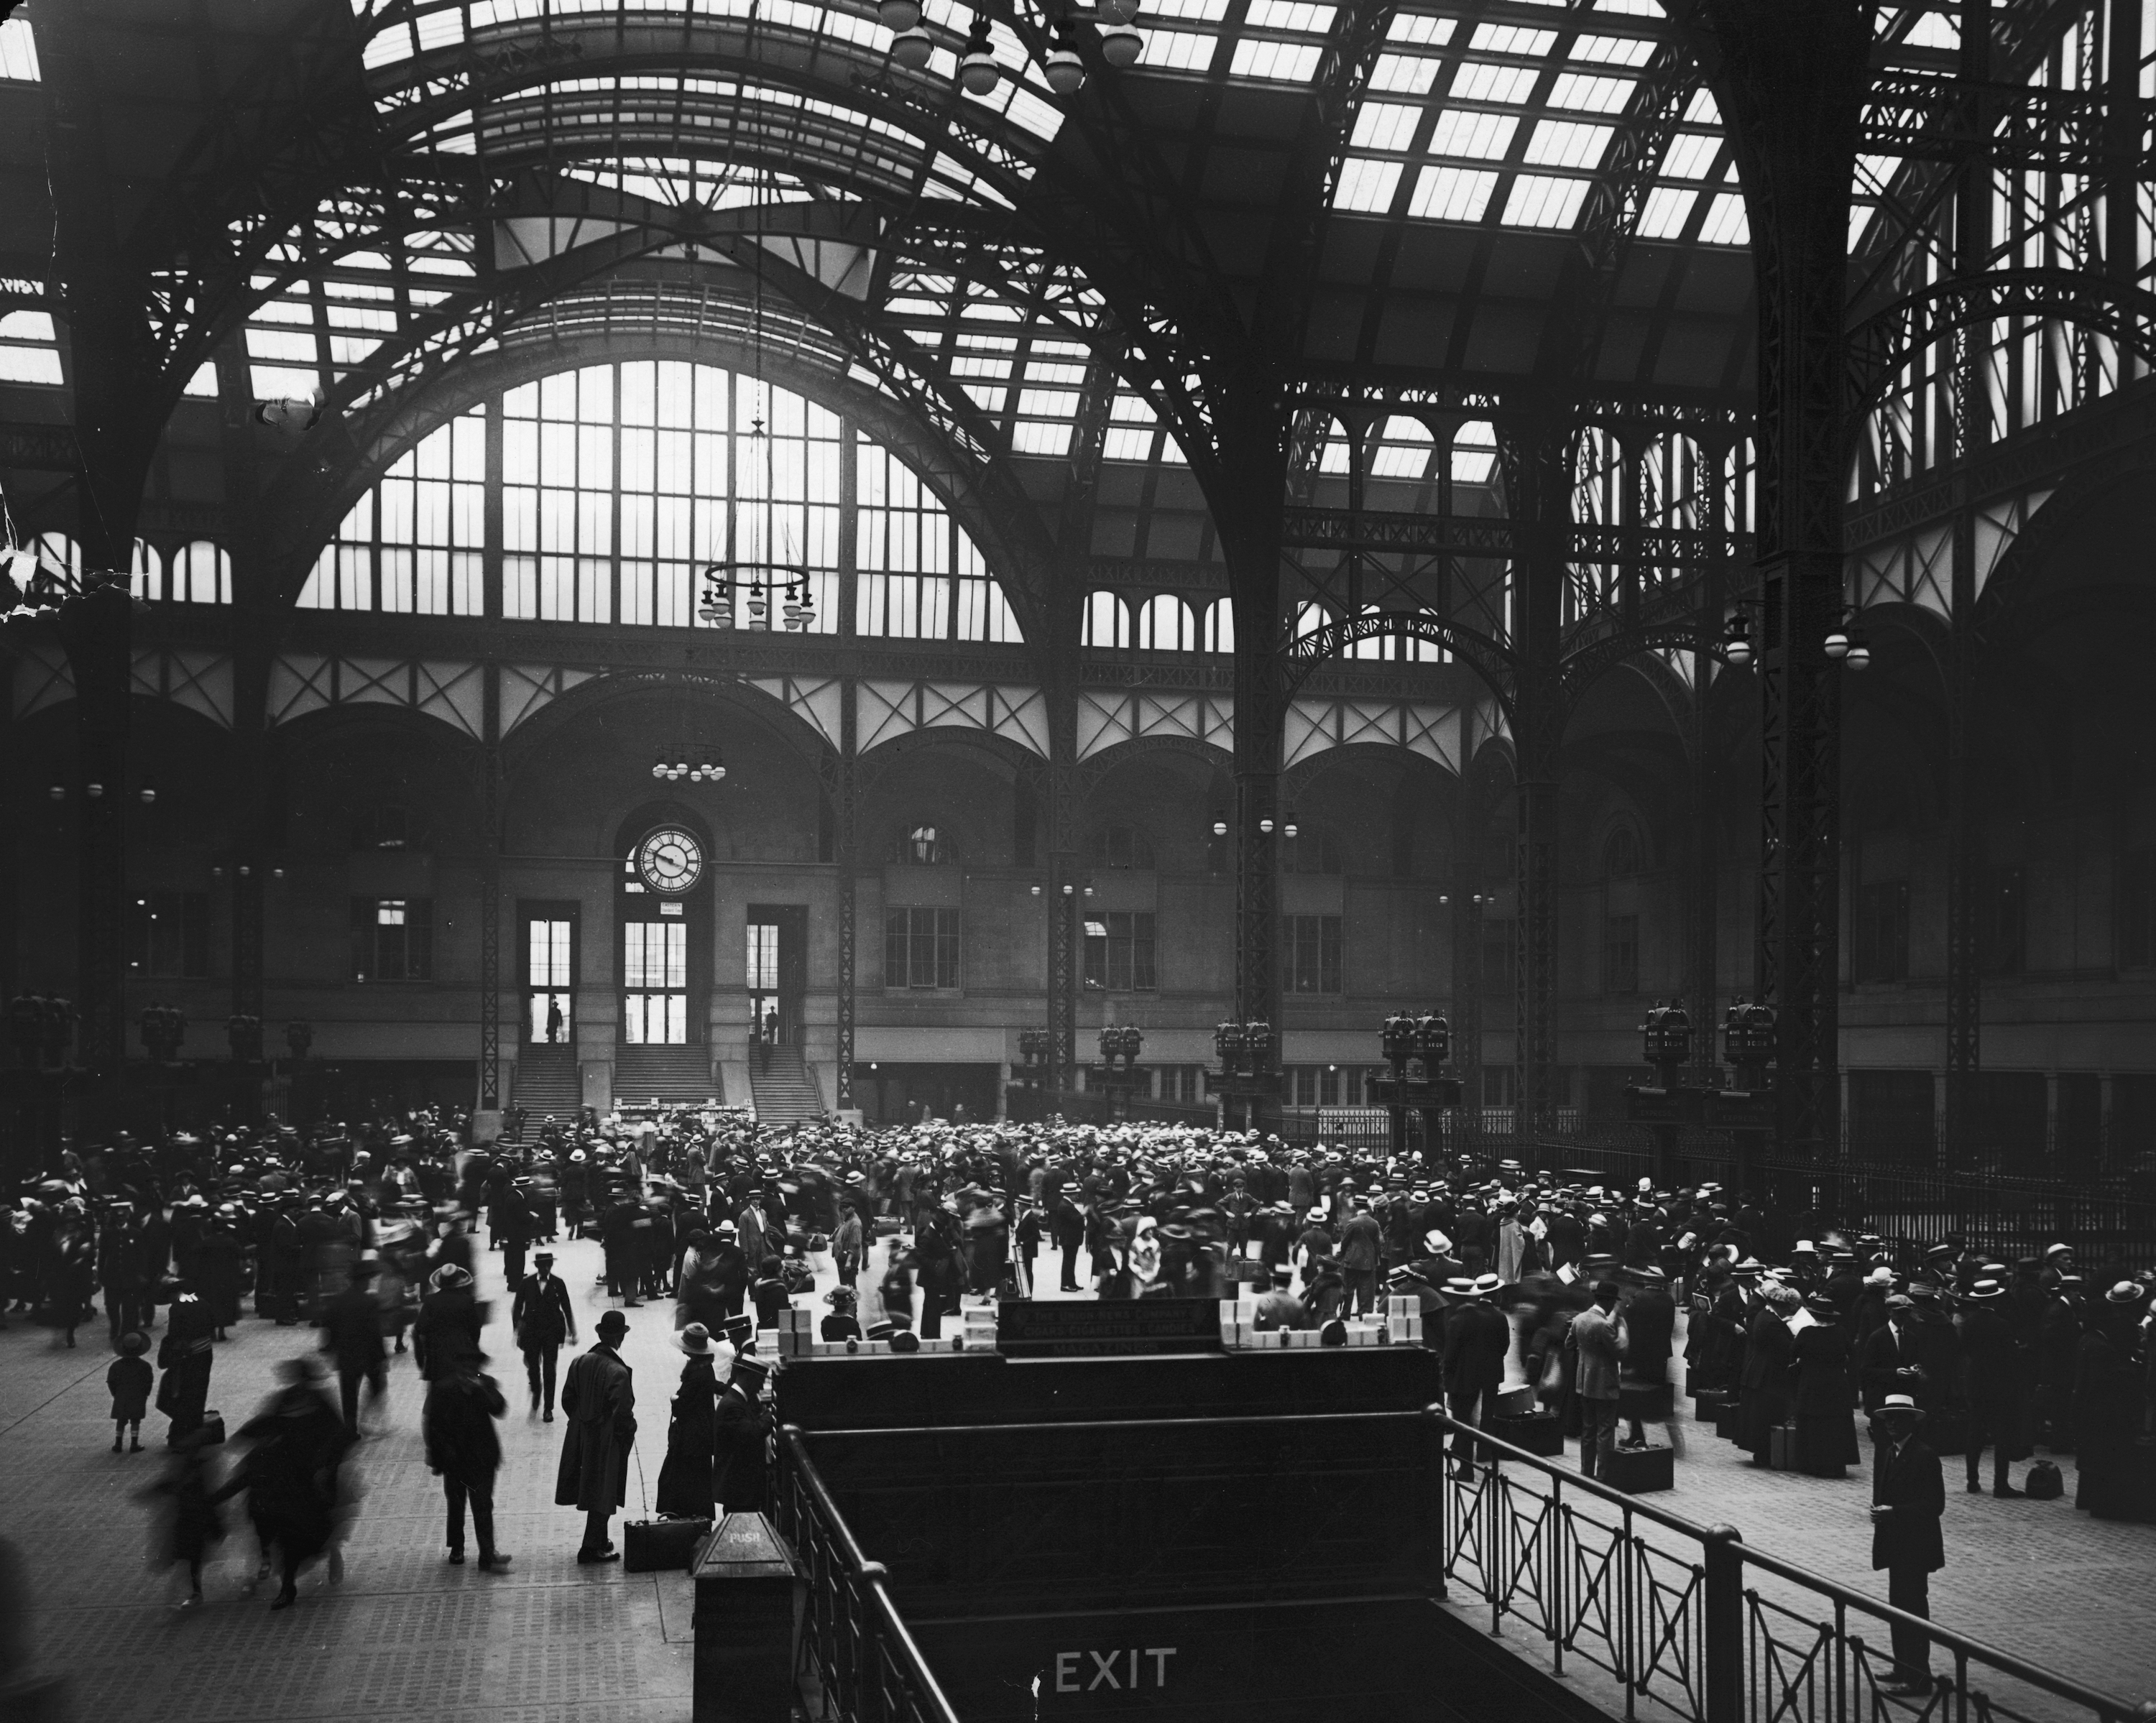 Amtrak Phone Number Penn Station - Inside mckim mead white s penn station in the early 20th century photo by edwin levick getty images